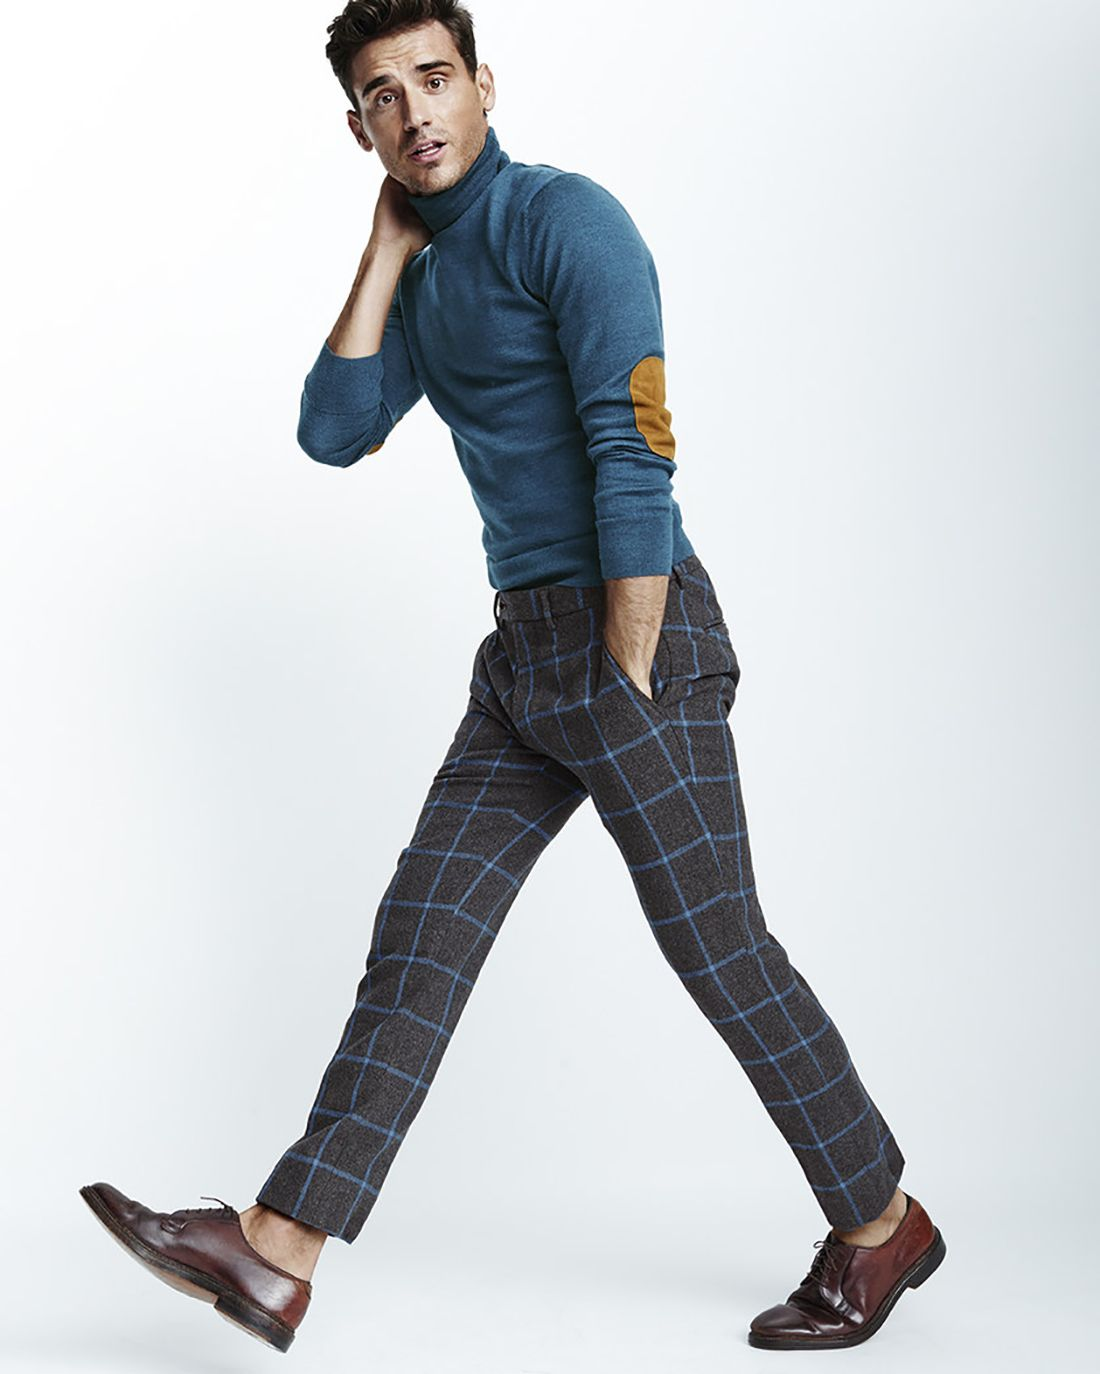 2f0f0a12b627 Elbow pads + plaid pants are never a bad idea. | Gift Ideas for Him ...